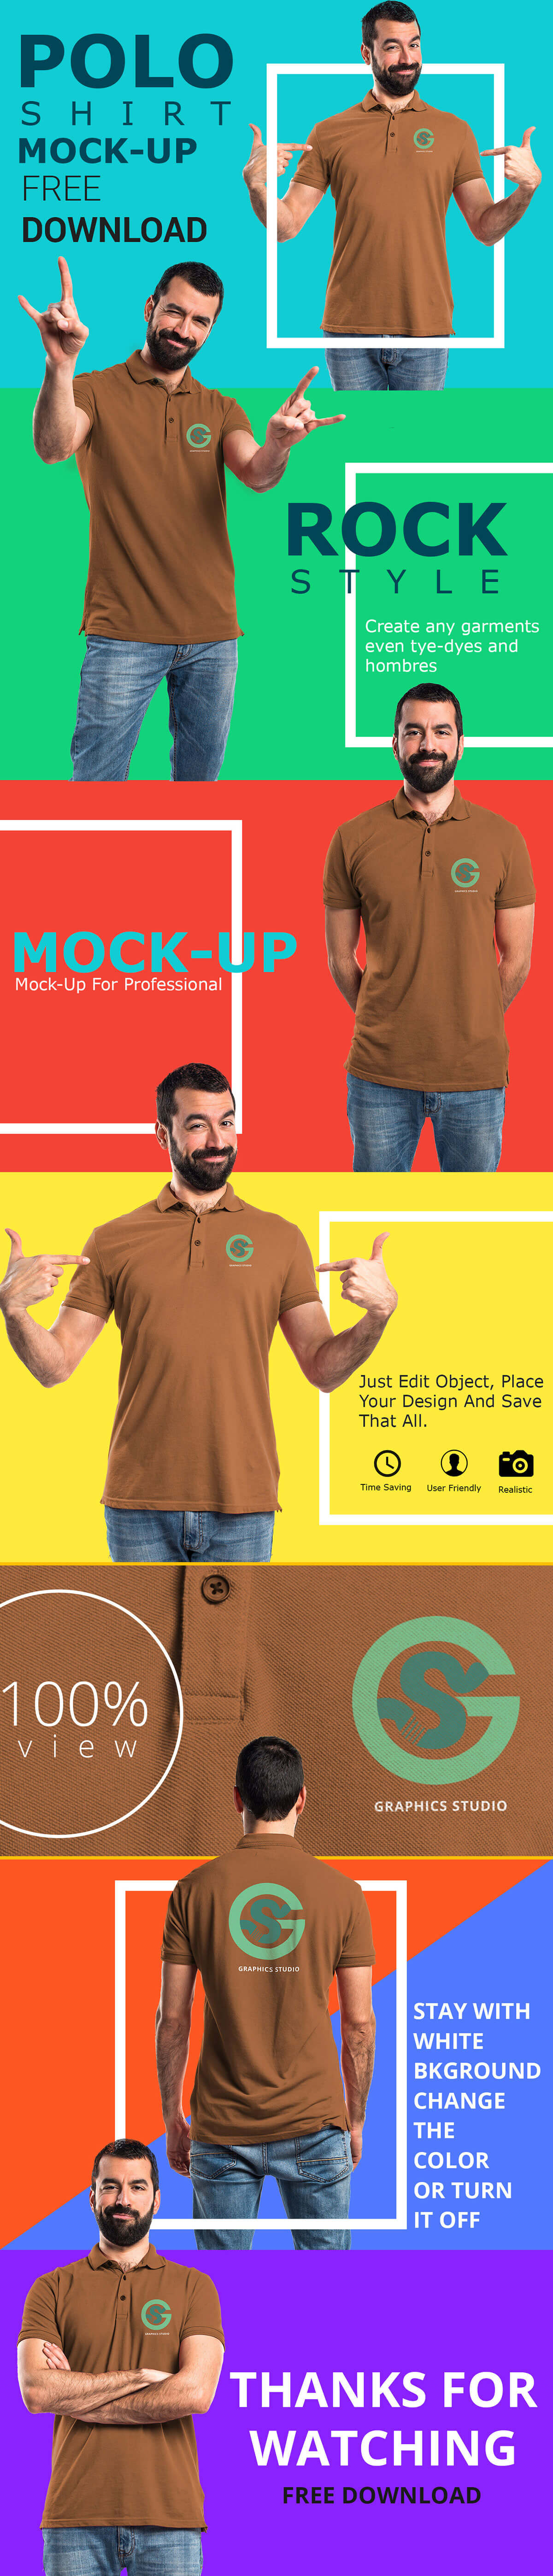 Free Polo Shirt Mockup Pack